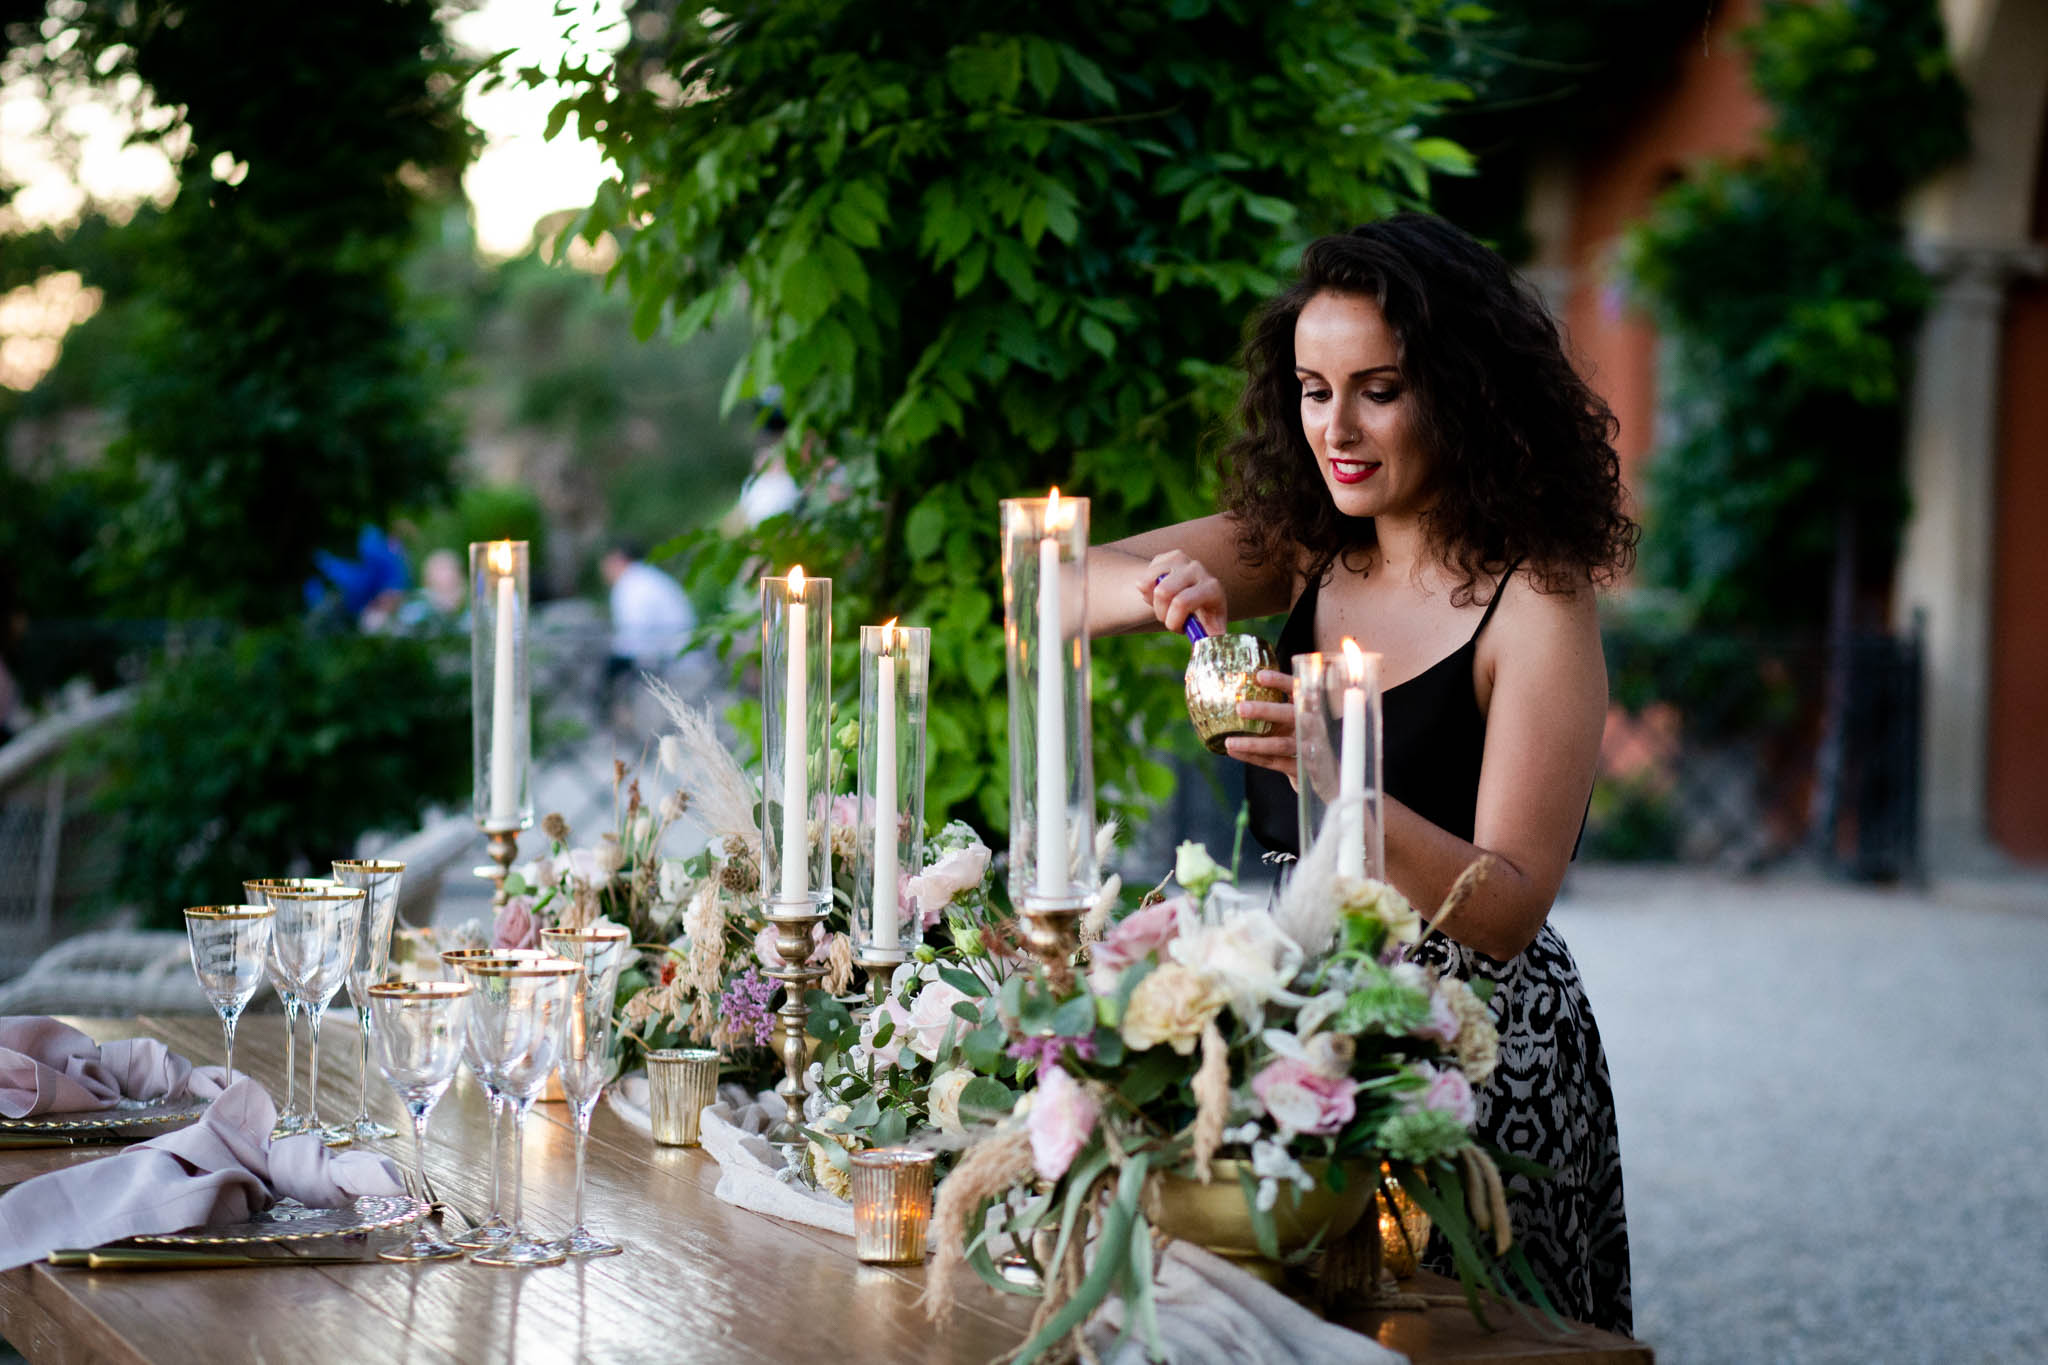 Wedding styled shoot in Florence - Laura Barbera Photography